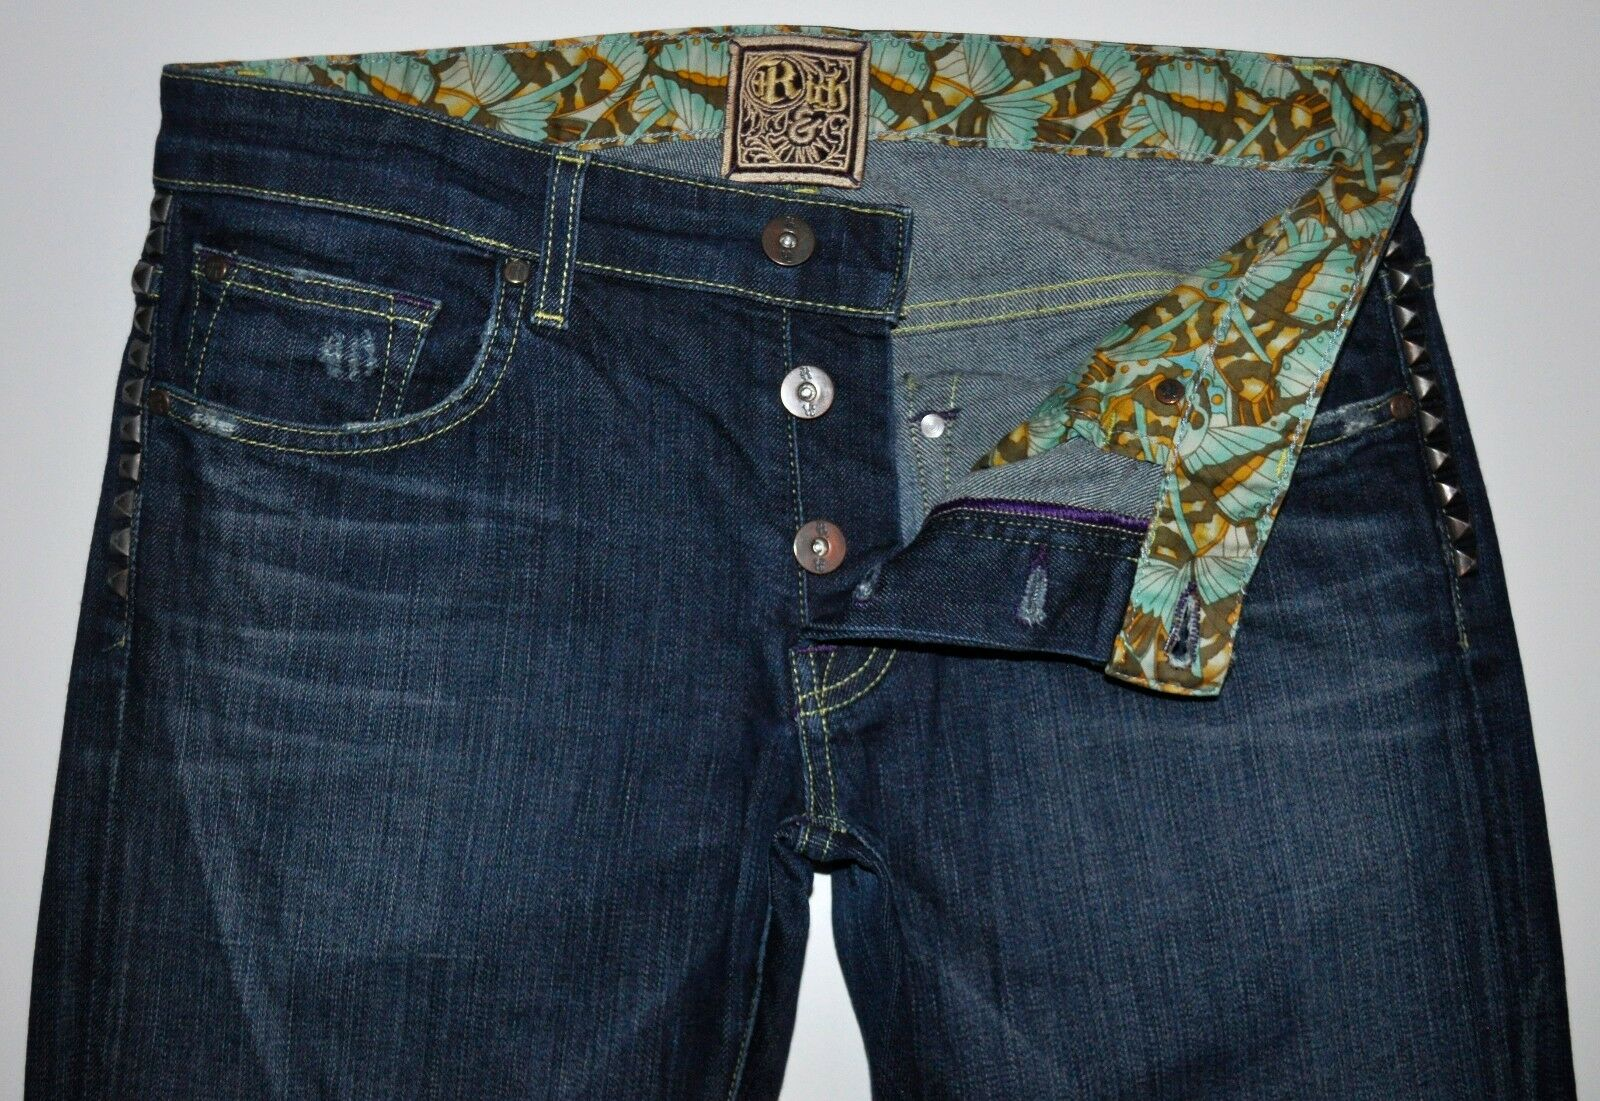 Rich & Skinny Super Studly Factory Dstressd Dark bluee Straight Leg Jeans 27 X 31